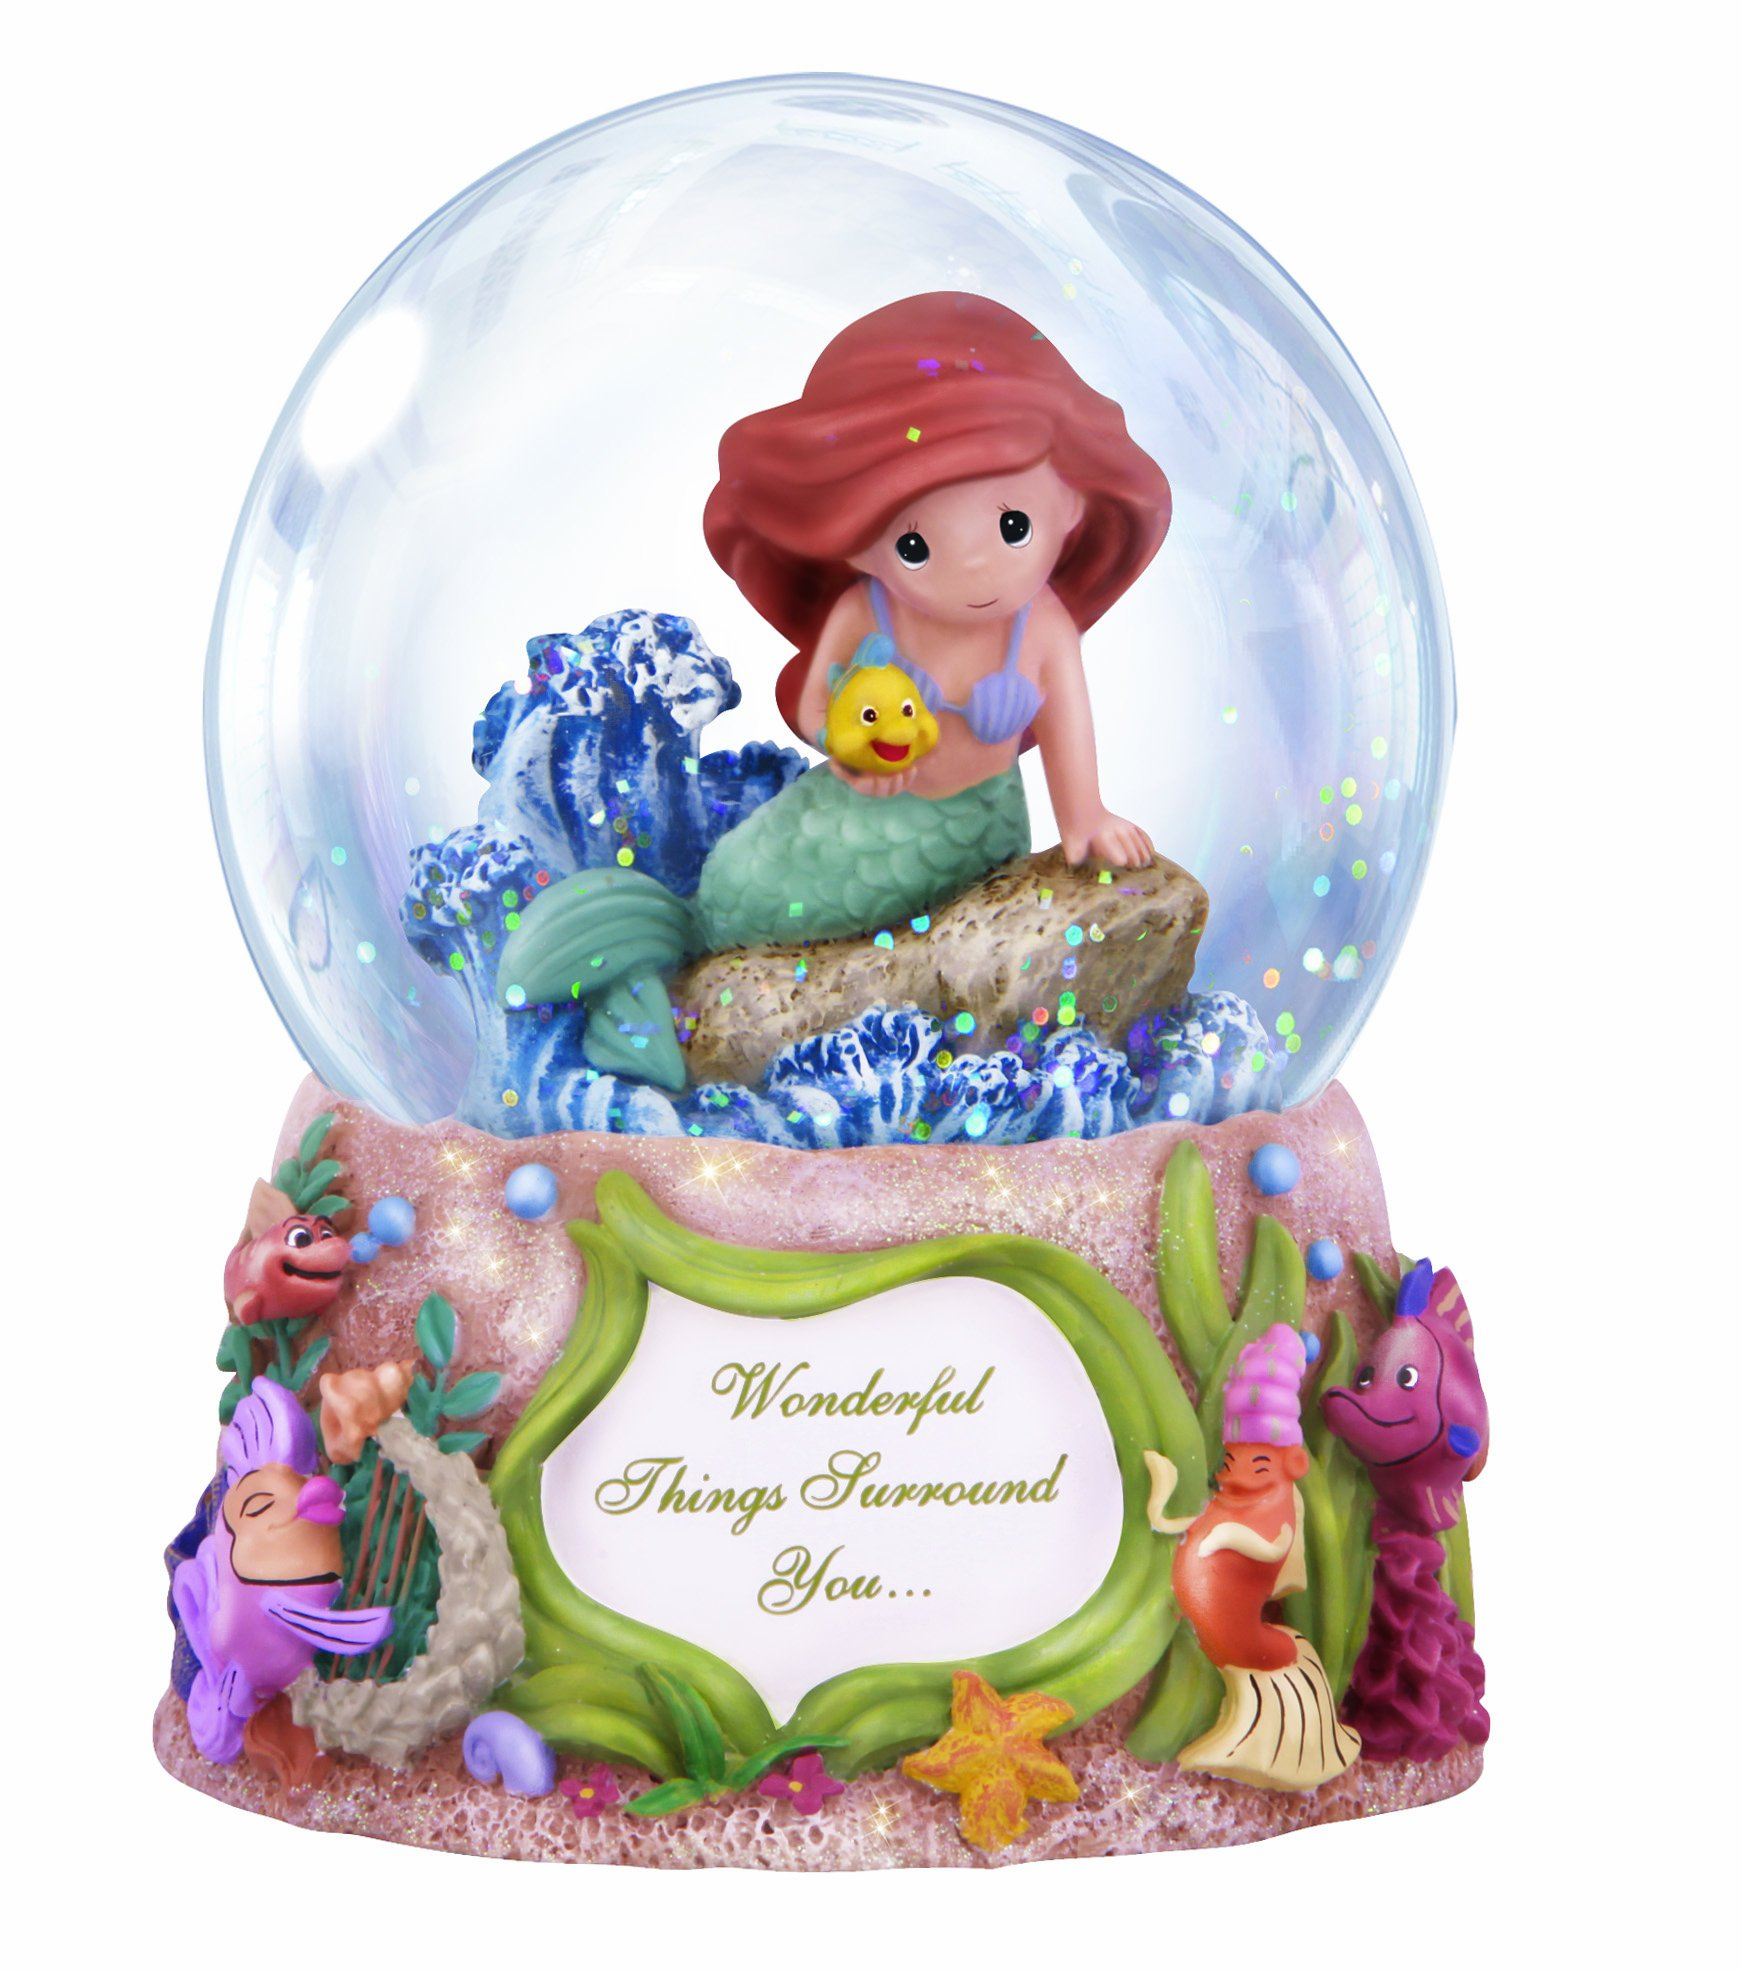 Precious Moments Disney Showcase Collection, Wonderful Things Surround You, Musical, Resin/Glass Snow Globe, 132108 by Precious Moments